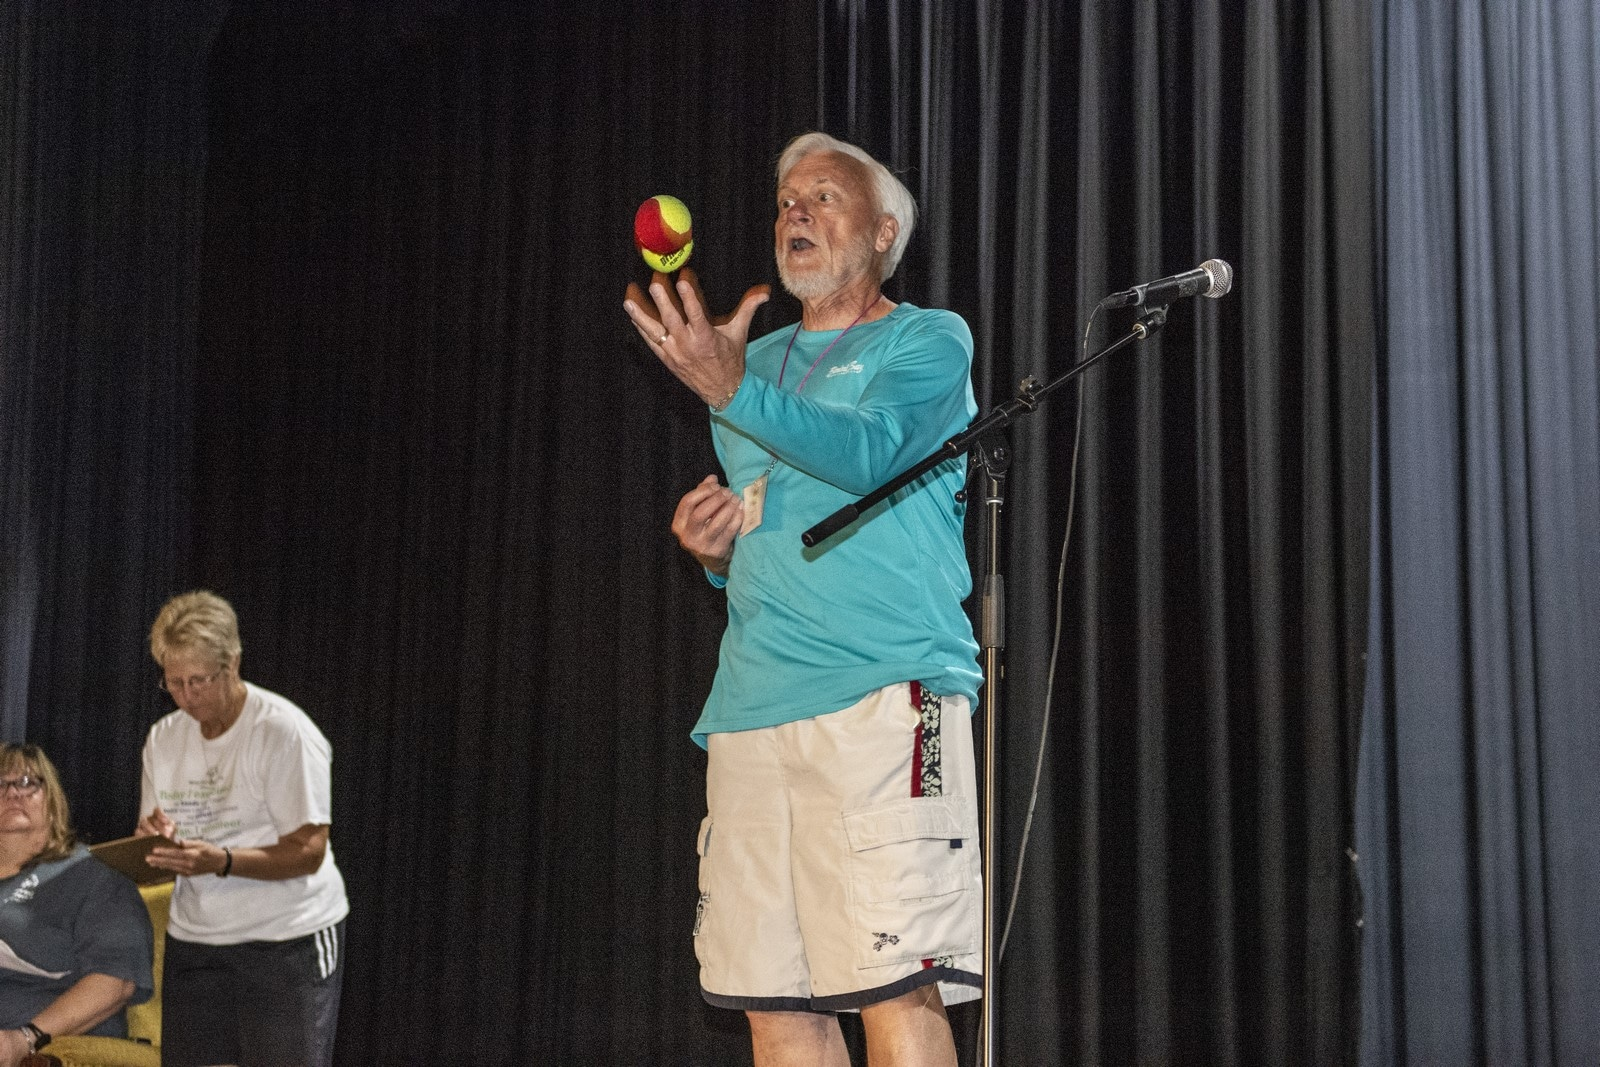 A volunteer juggles on a stage during a talent show